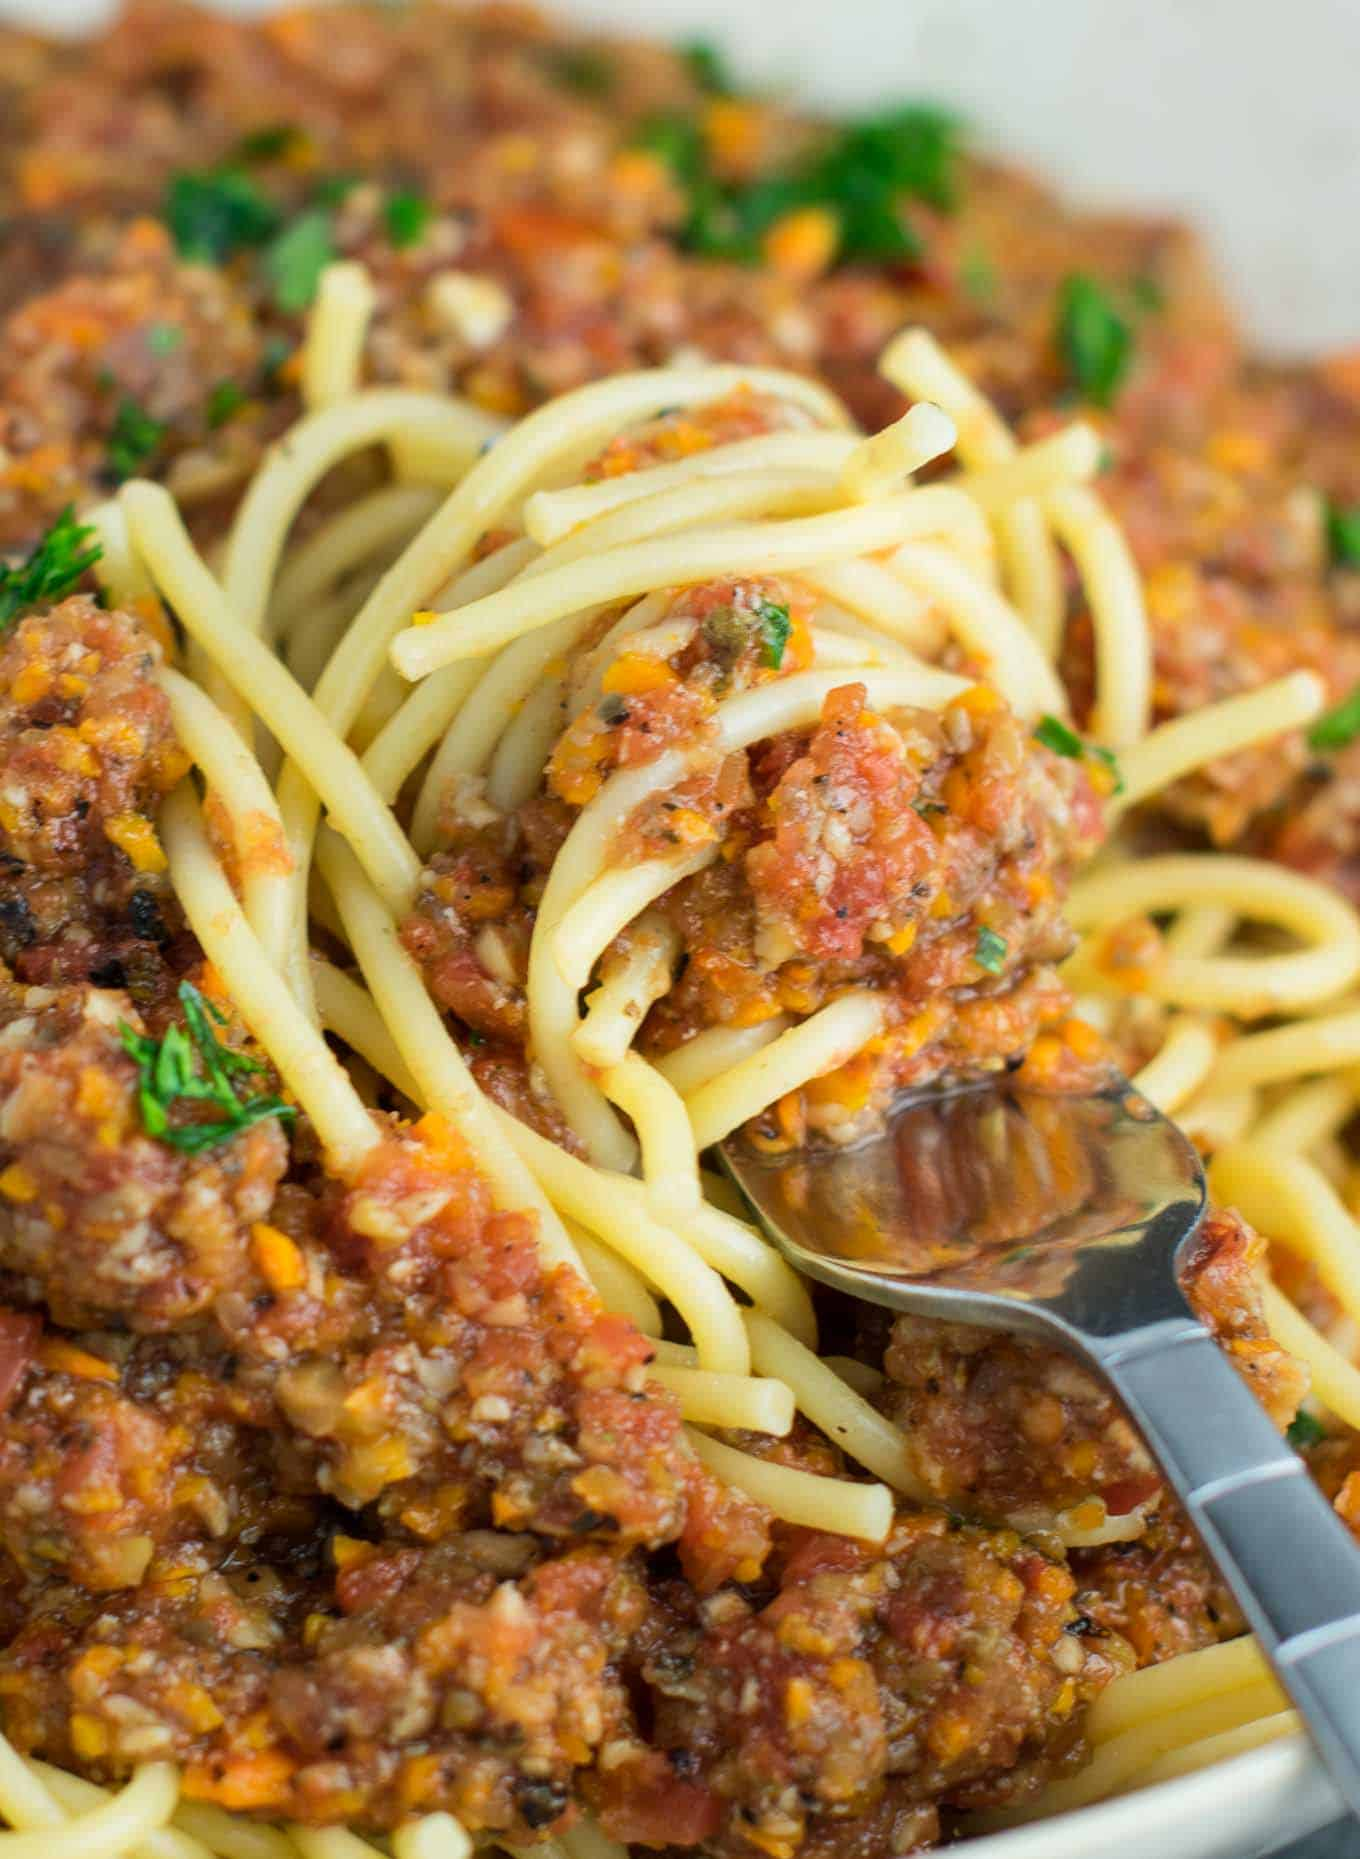 easy bolognese sauce made from vegetables